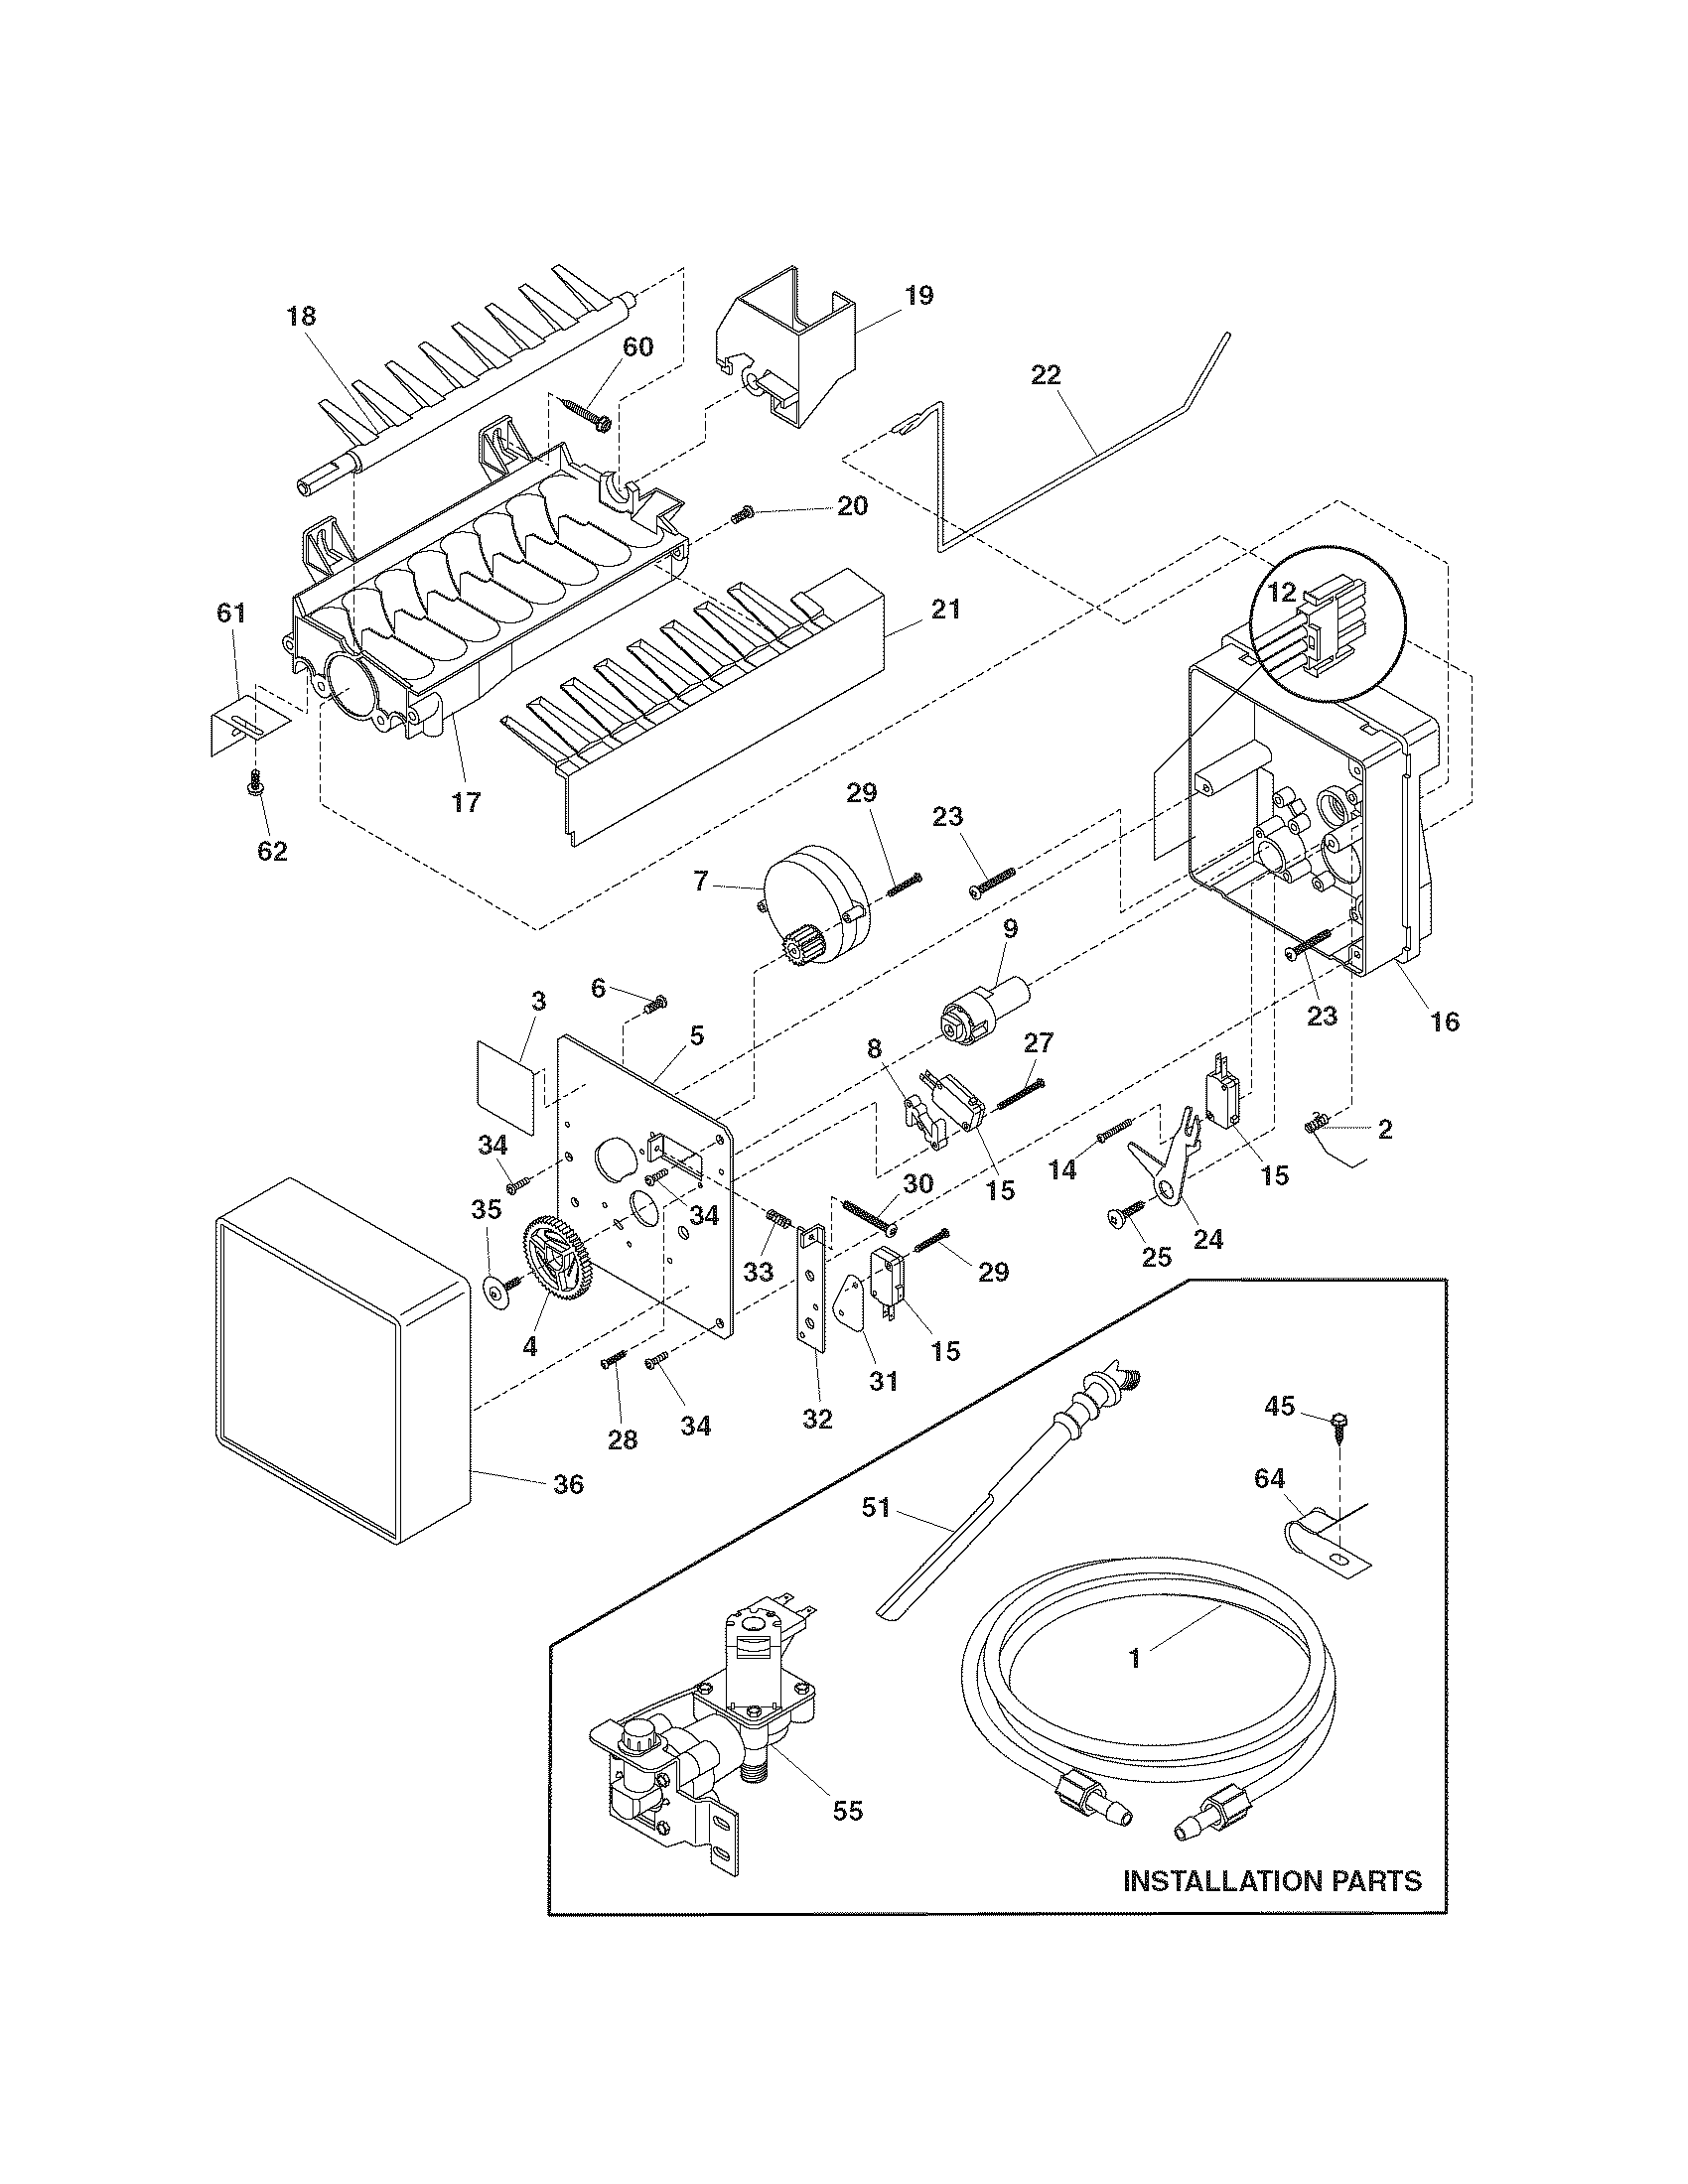 ICE MAKER Diagram & Parts List for Model 25374812404